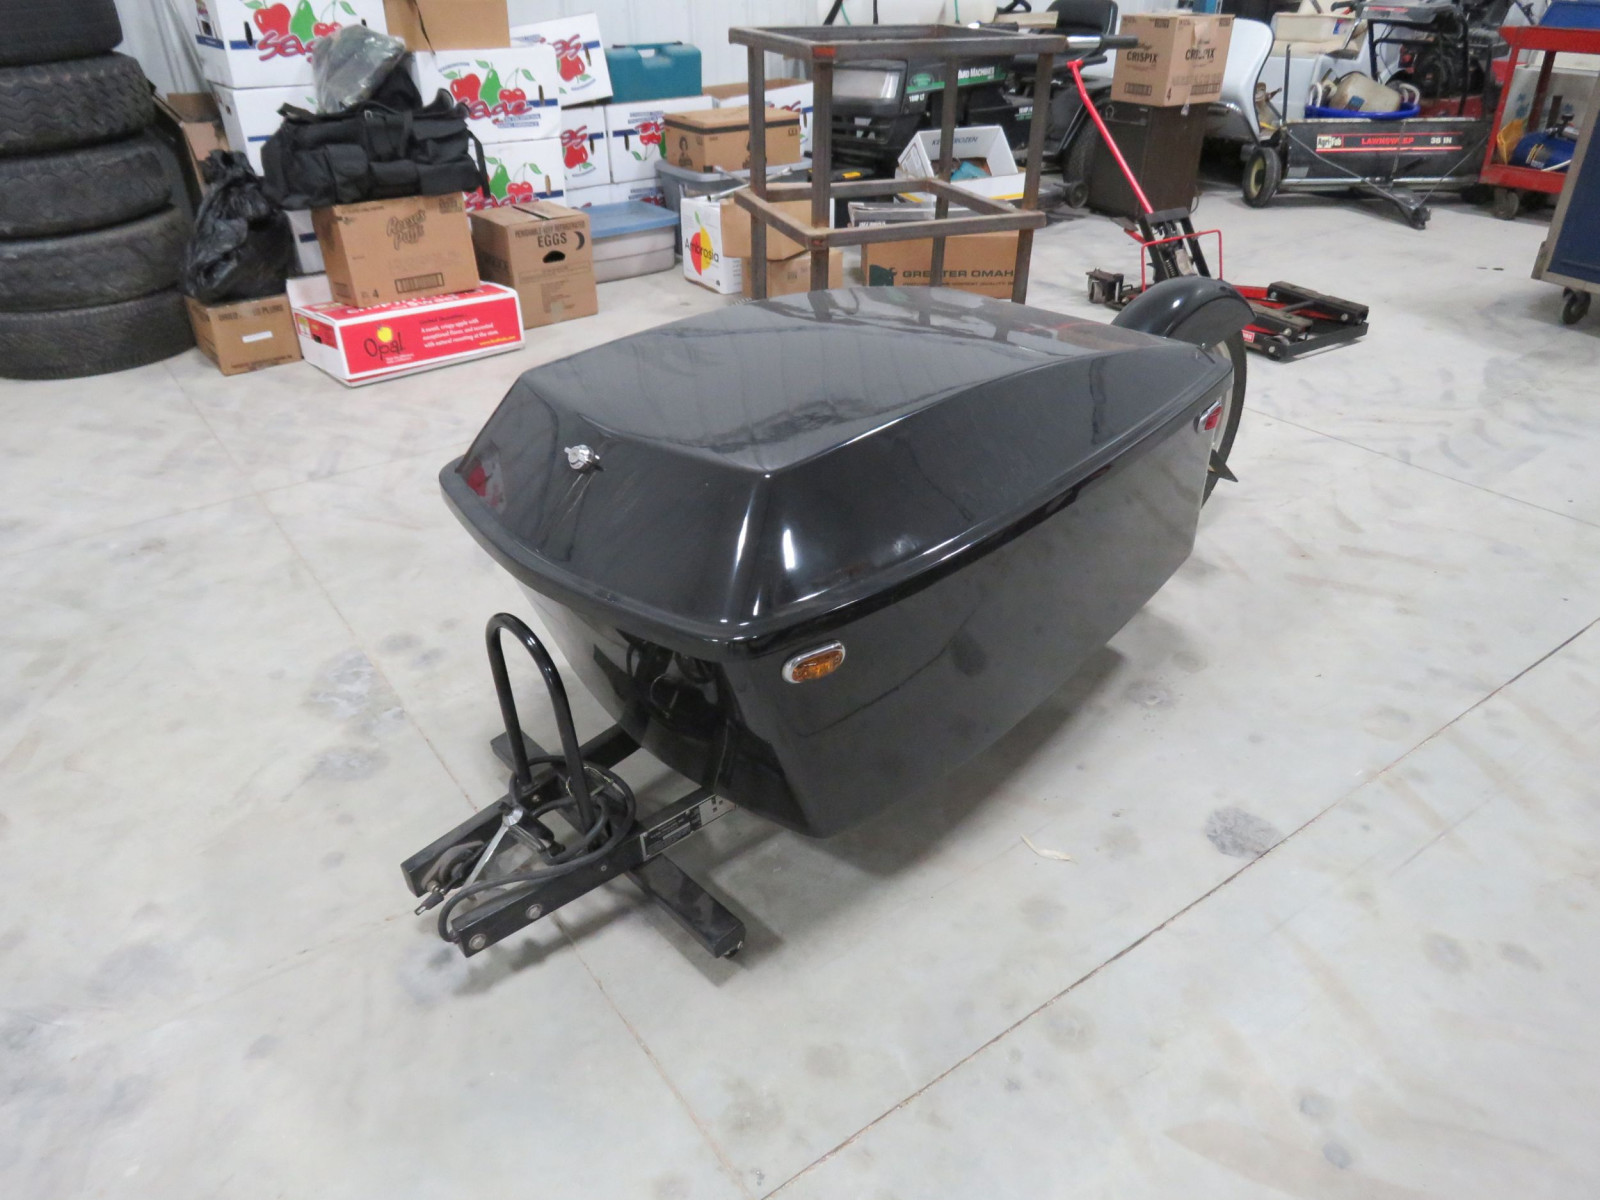 2009 Nline Motorcycle Trailer - Image 1